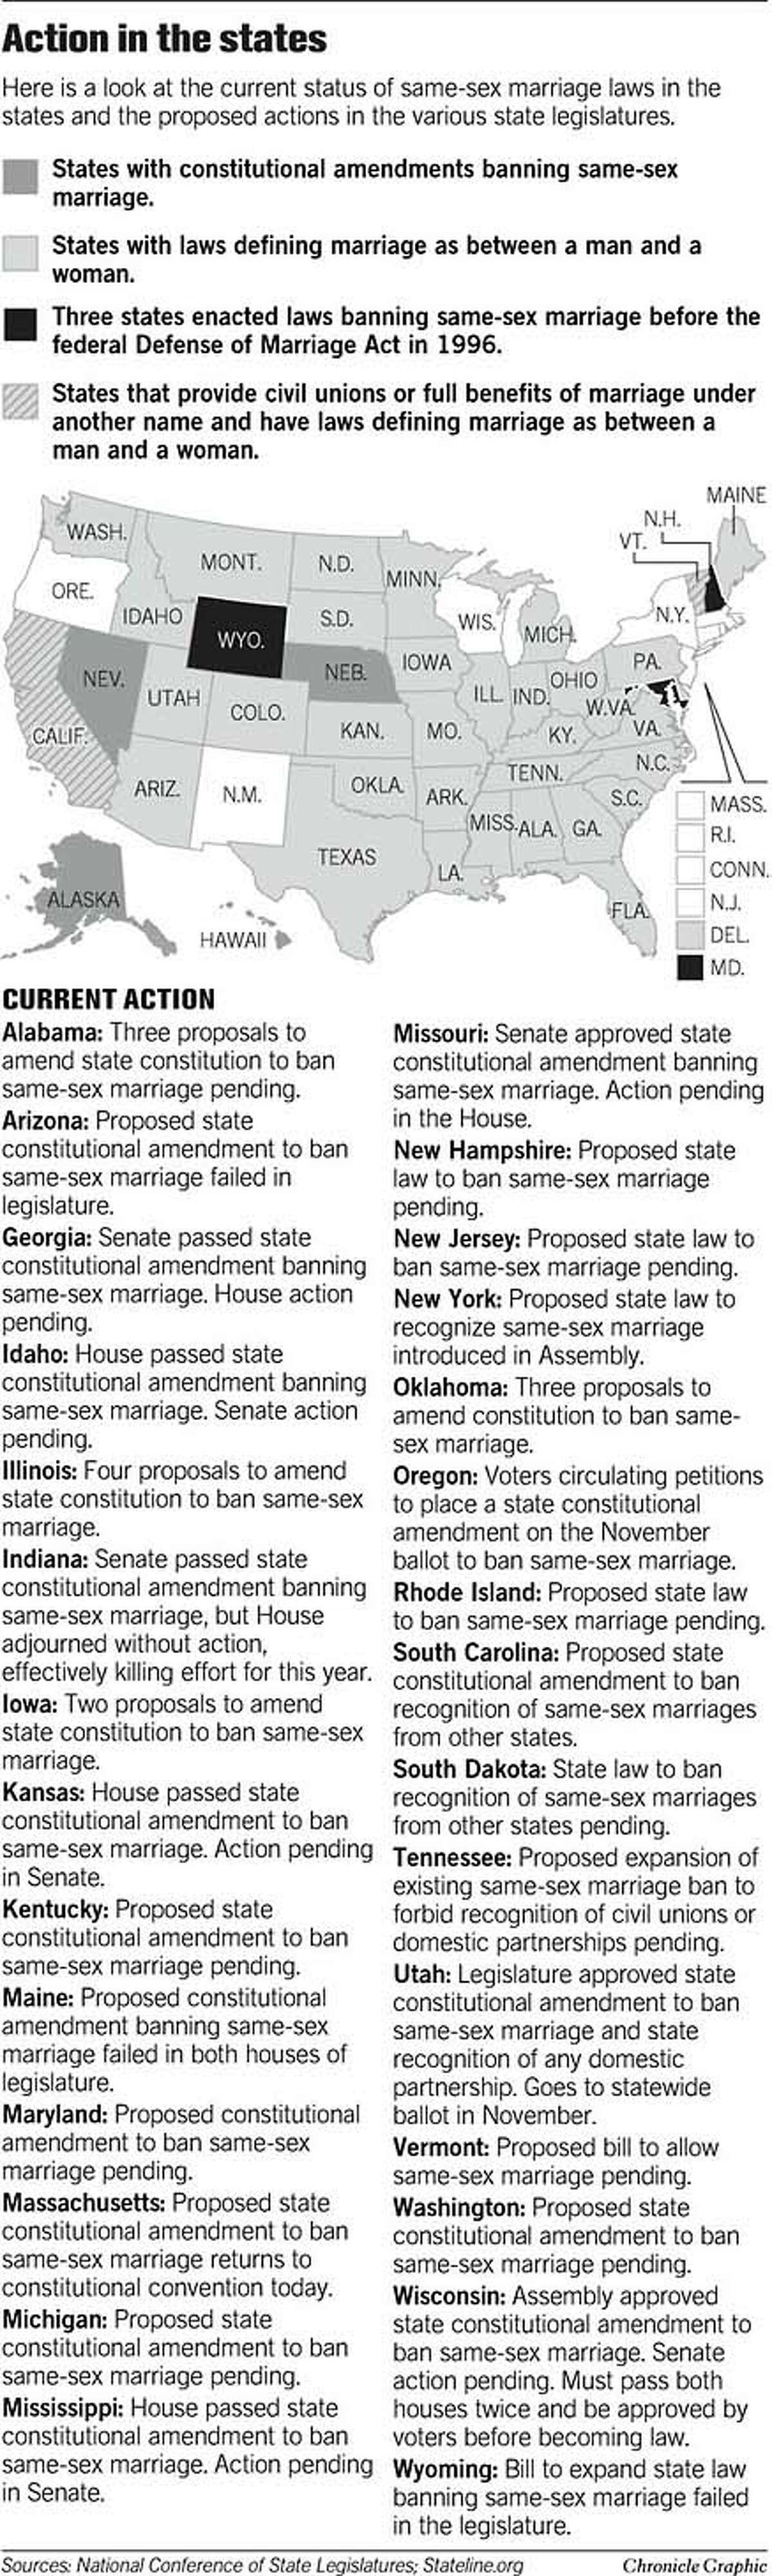 Action in the States. Chronicle Graphic